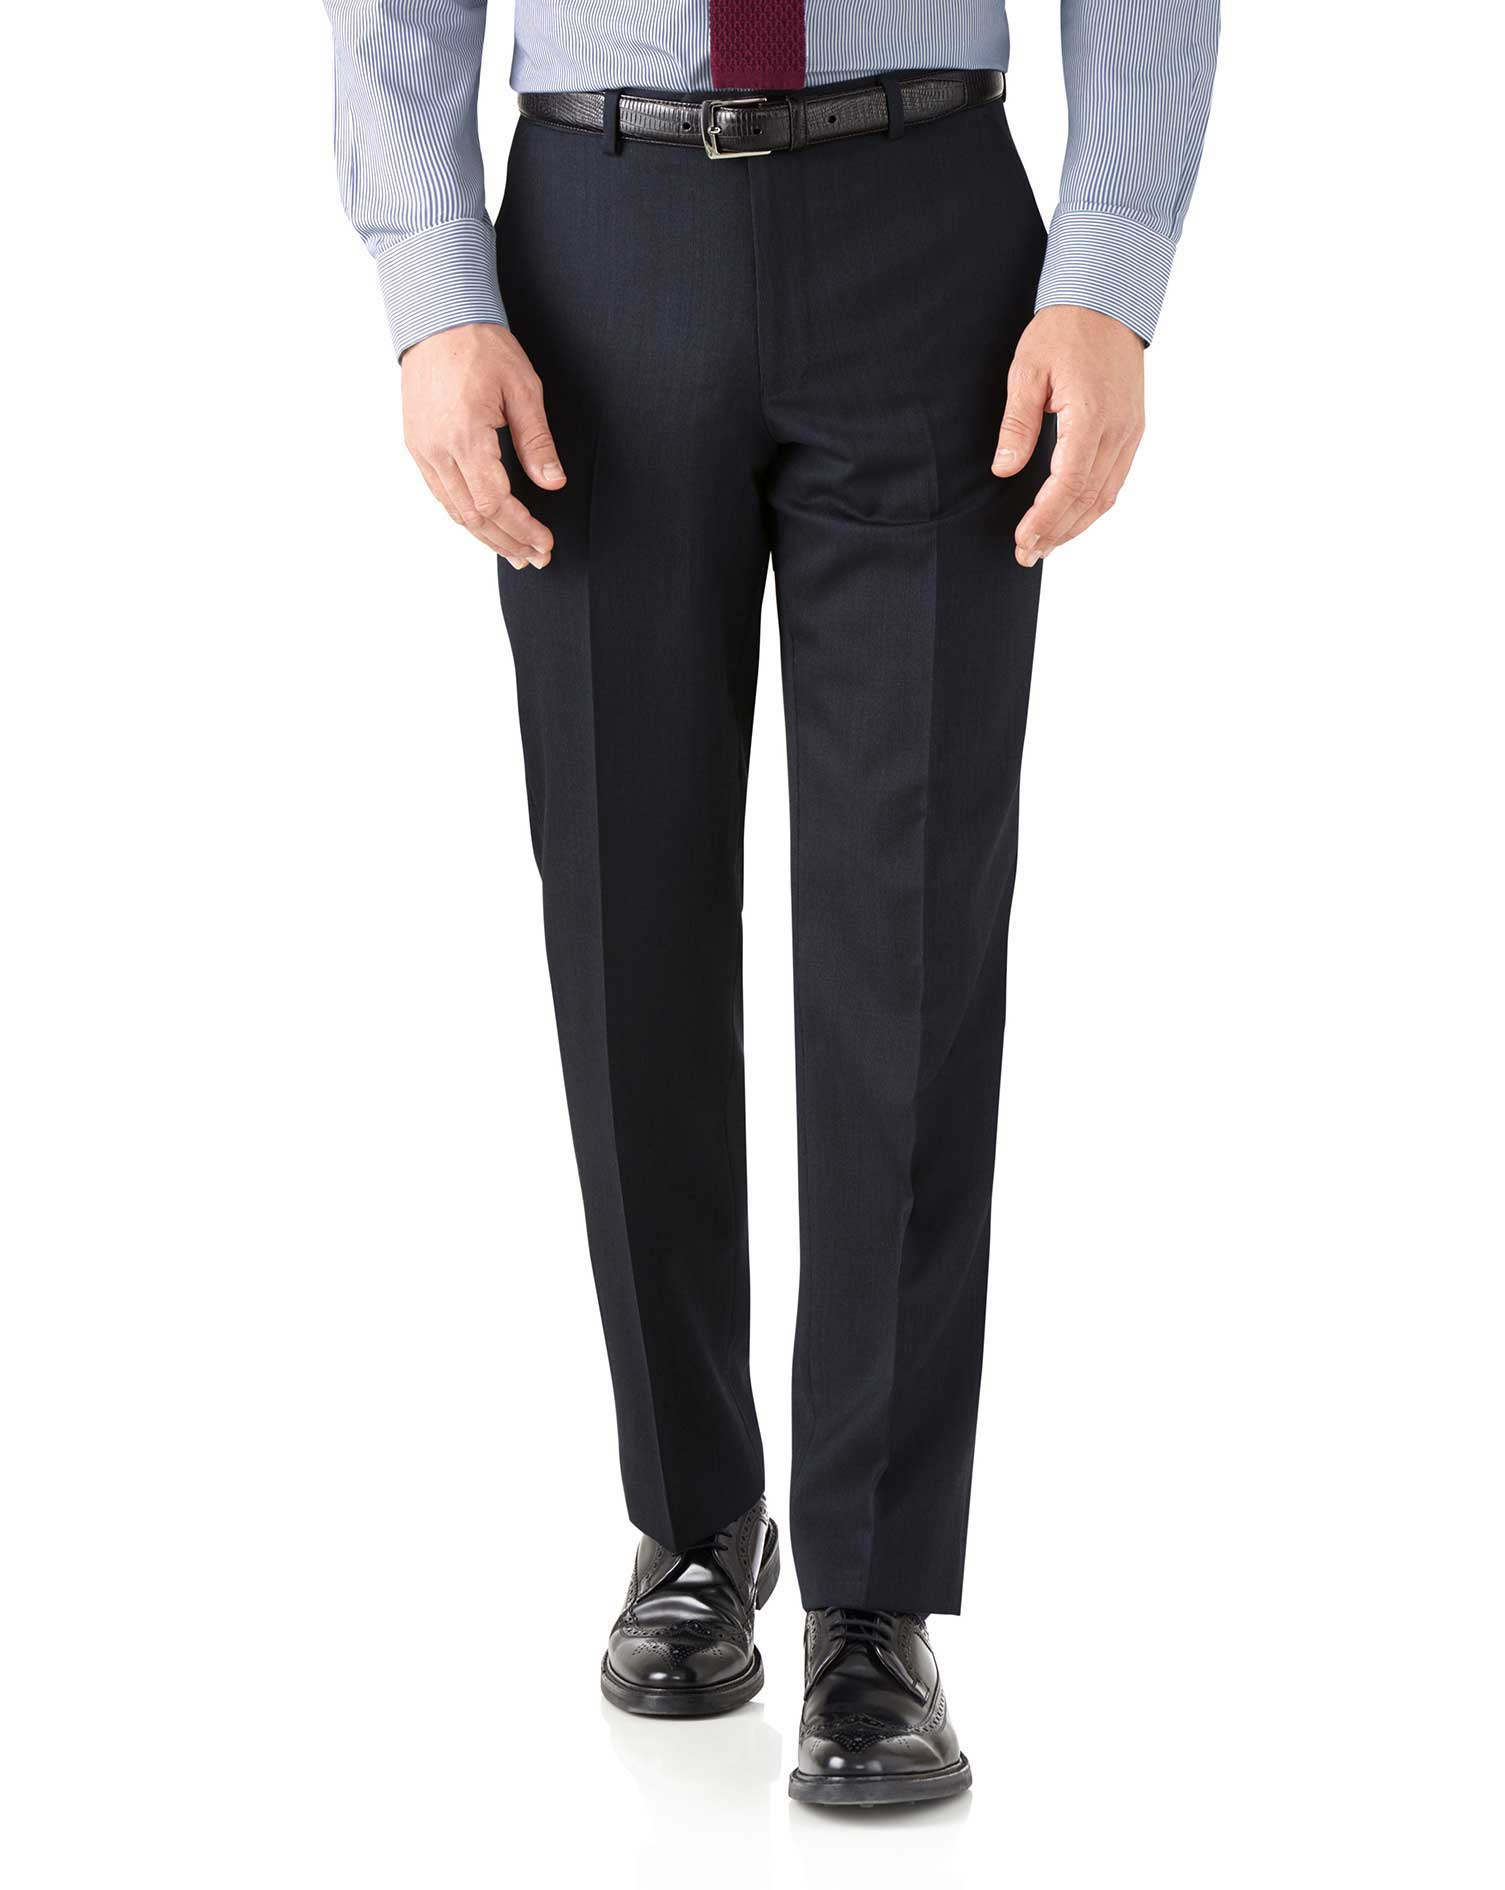 Navy Classic Fit Hairline Business Suit Trousers Size W36 L32 by Charles Tyrwhitt